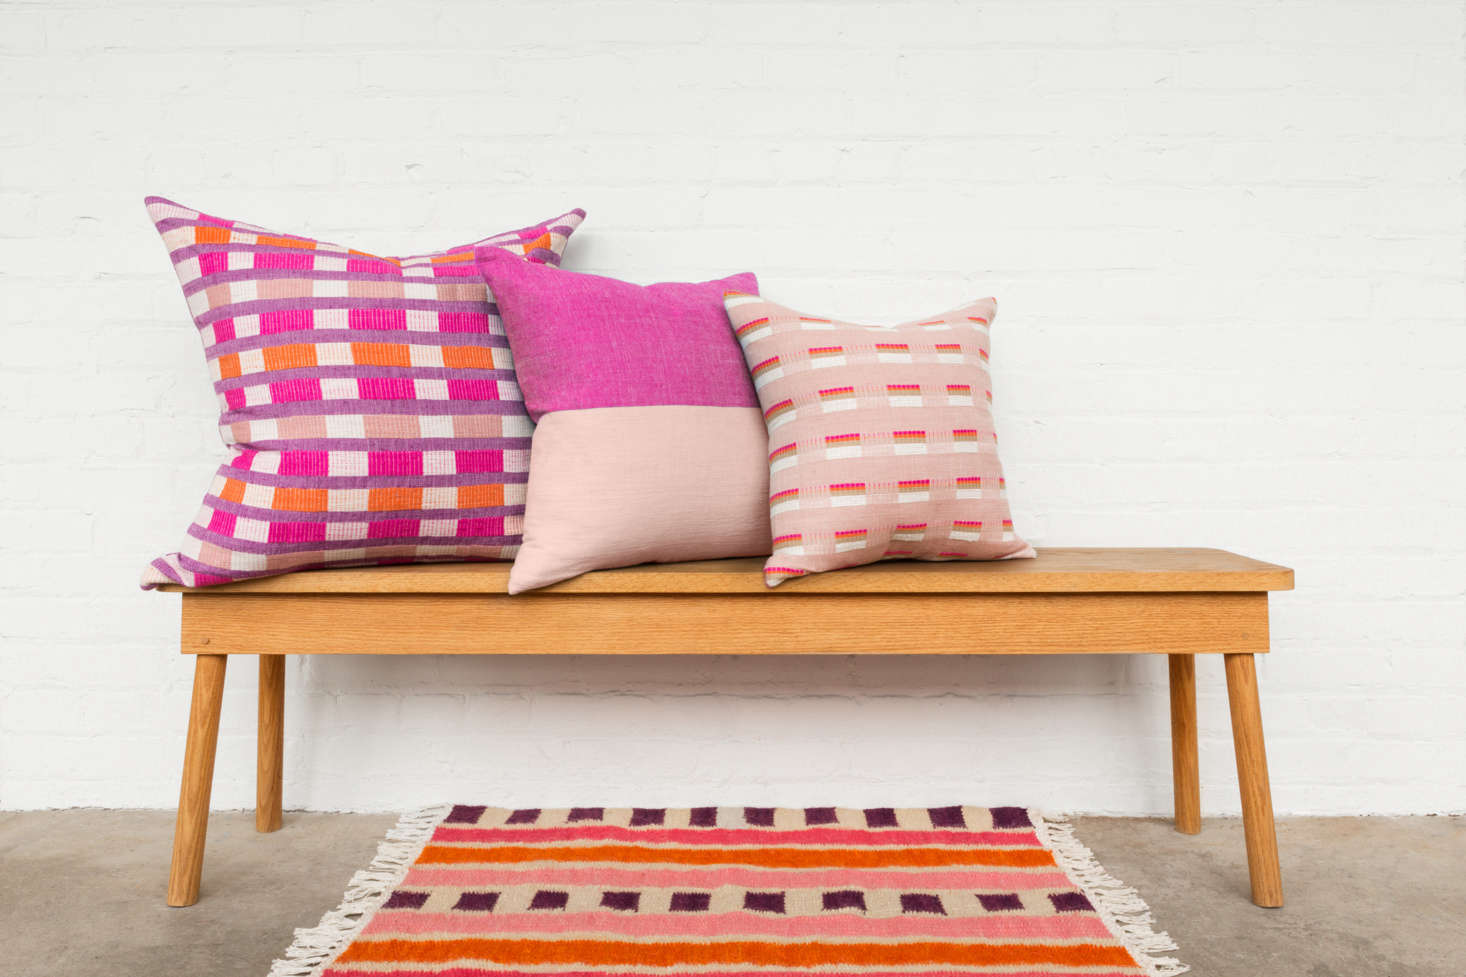 The cerise colorway, shown here in three sizes. The Omo Valley Collection pillows are priced between $5 and $0. The cerise Bana Rug is currently sold out, but it is still available in sable and azure for $5.